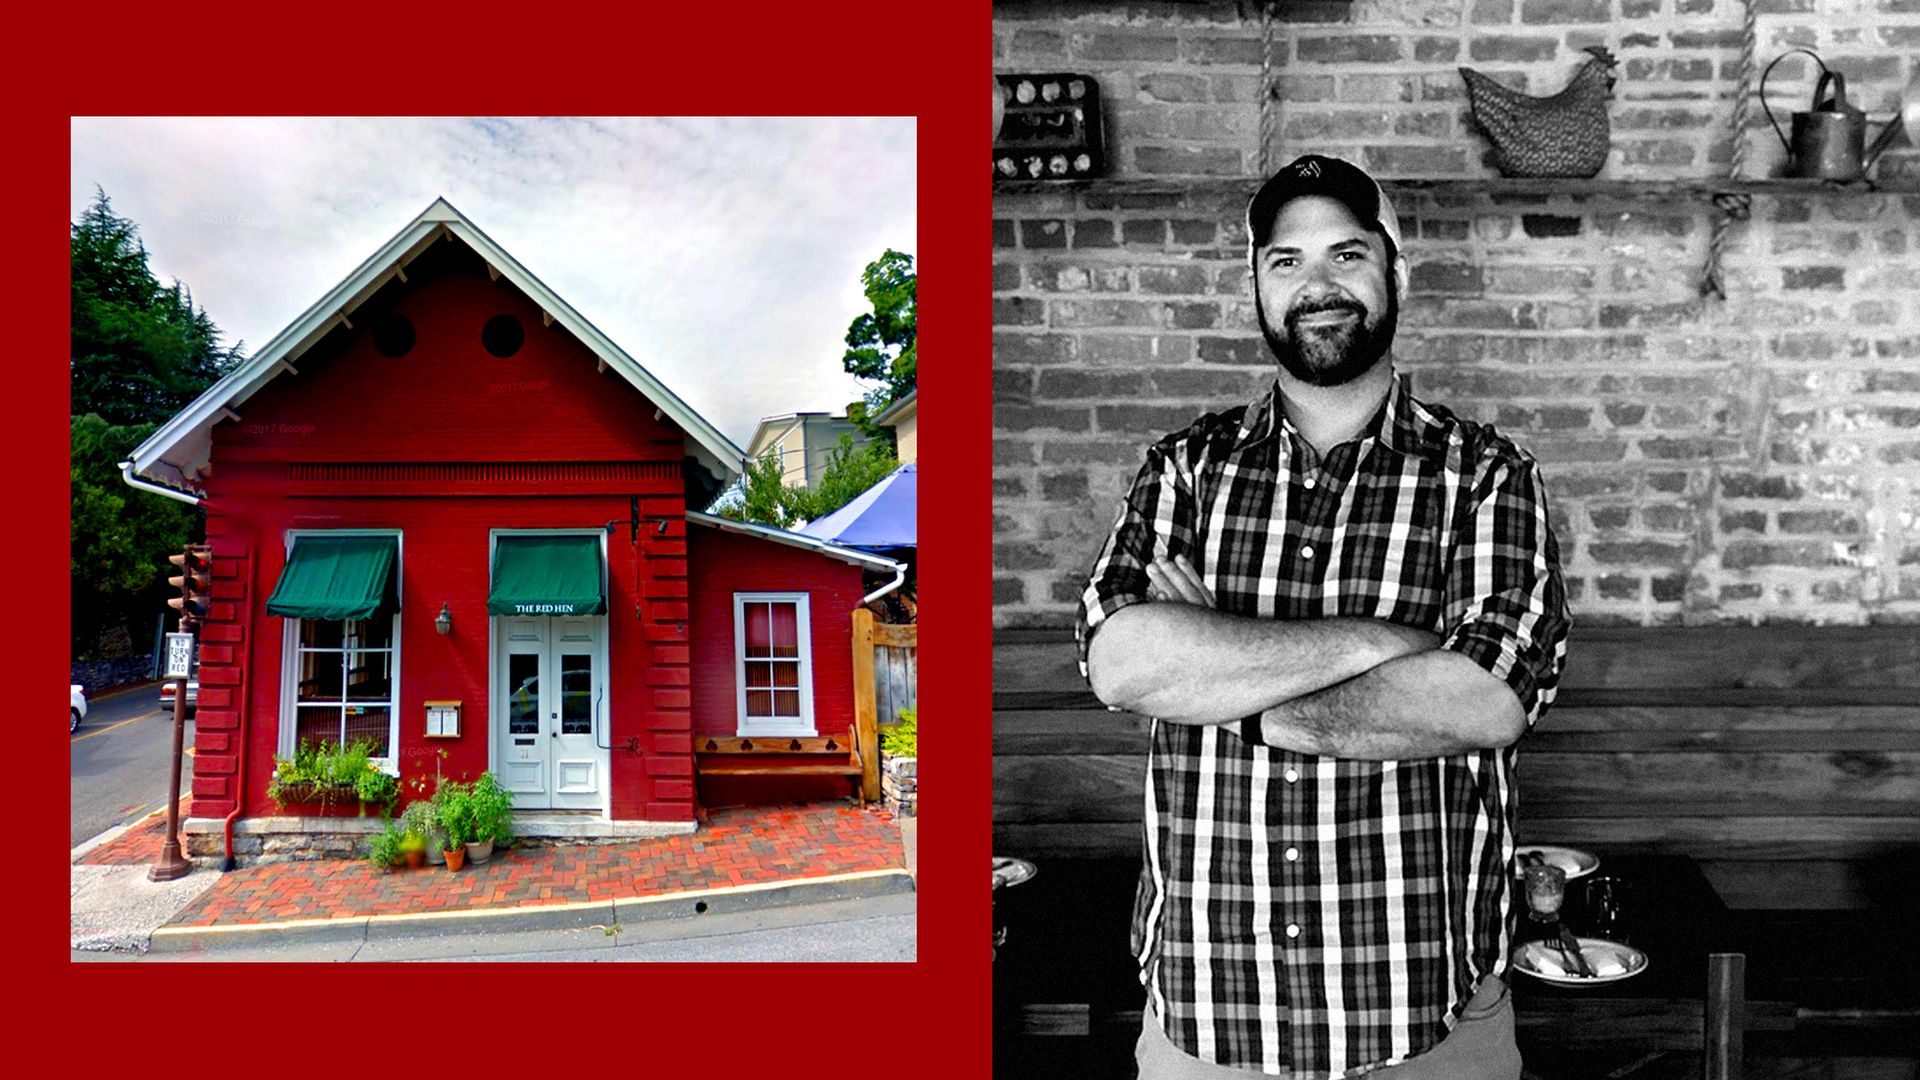 The chef of Red Hen DC pictured opposite the Red Hen in Lexington, Virginia